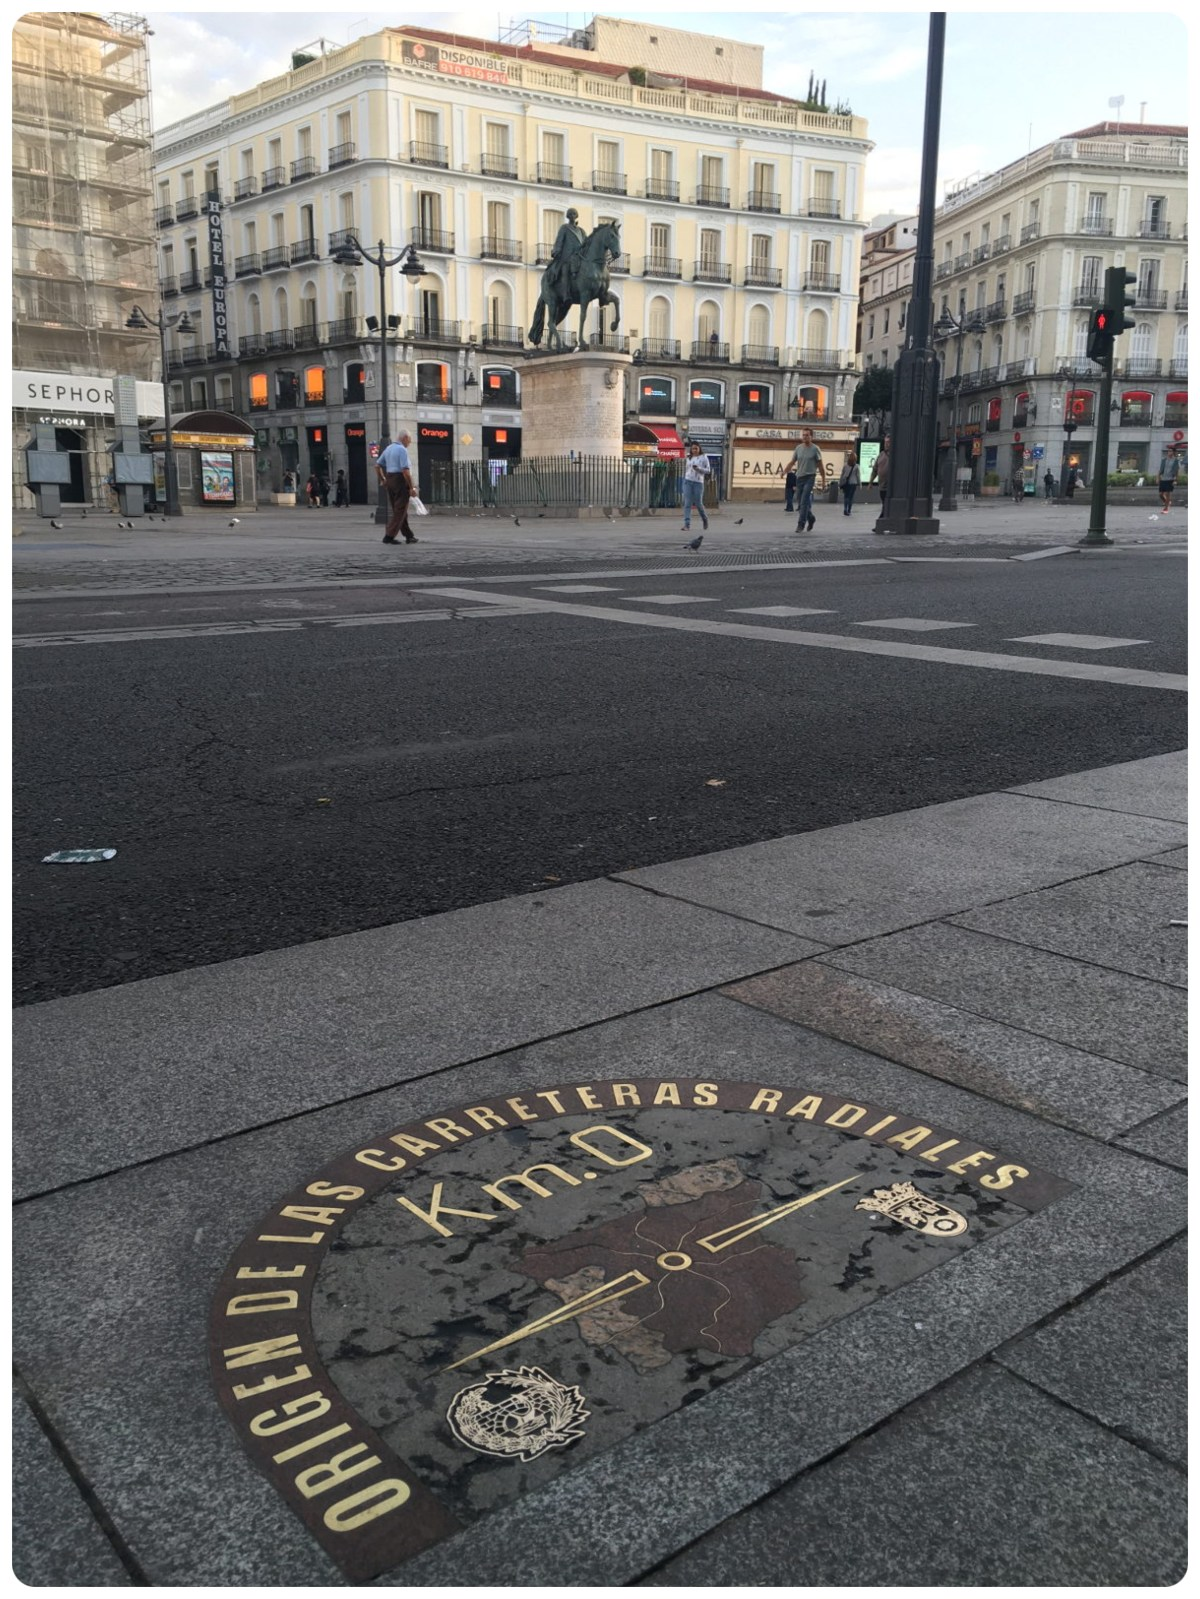 Kilometer Zero in Puerta del Sol, Madrid, Spain.